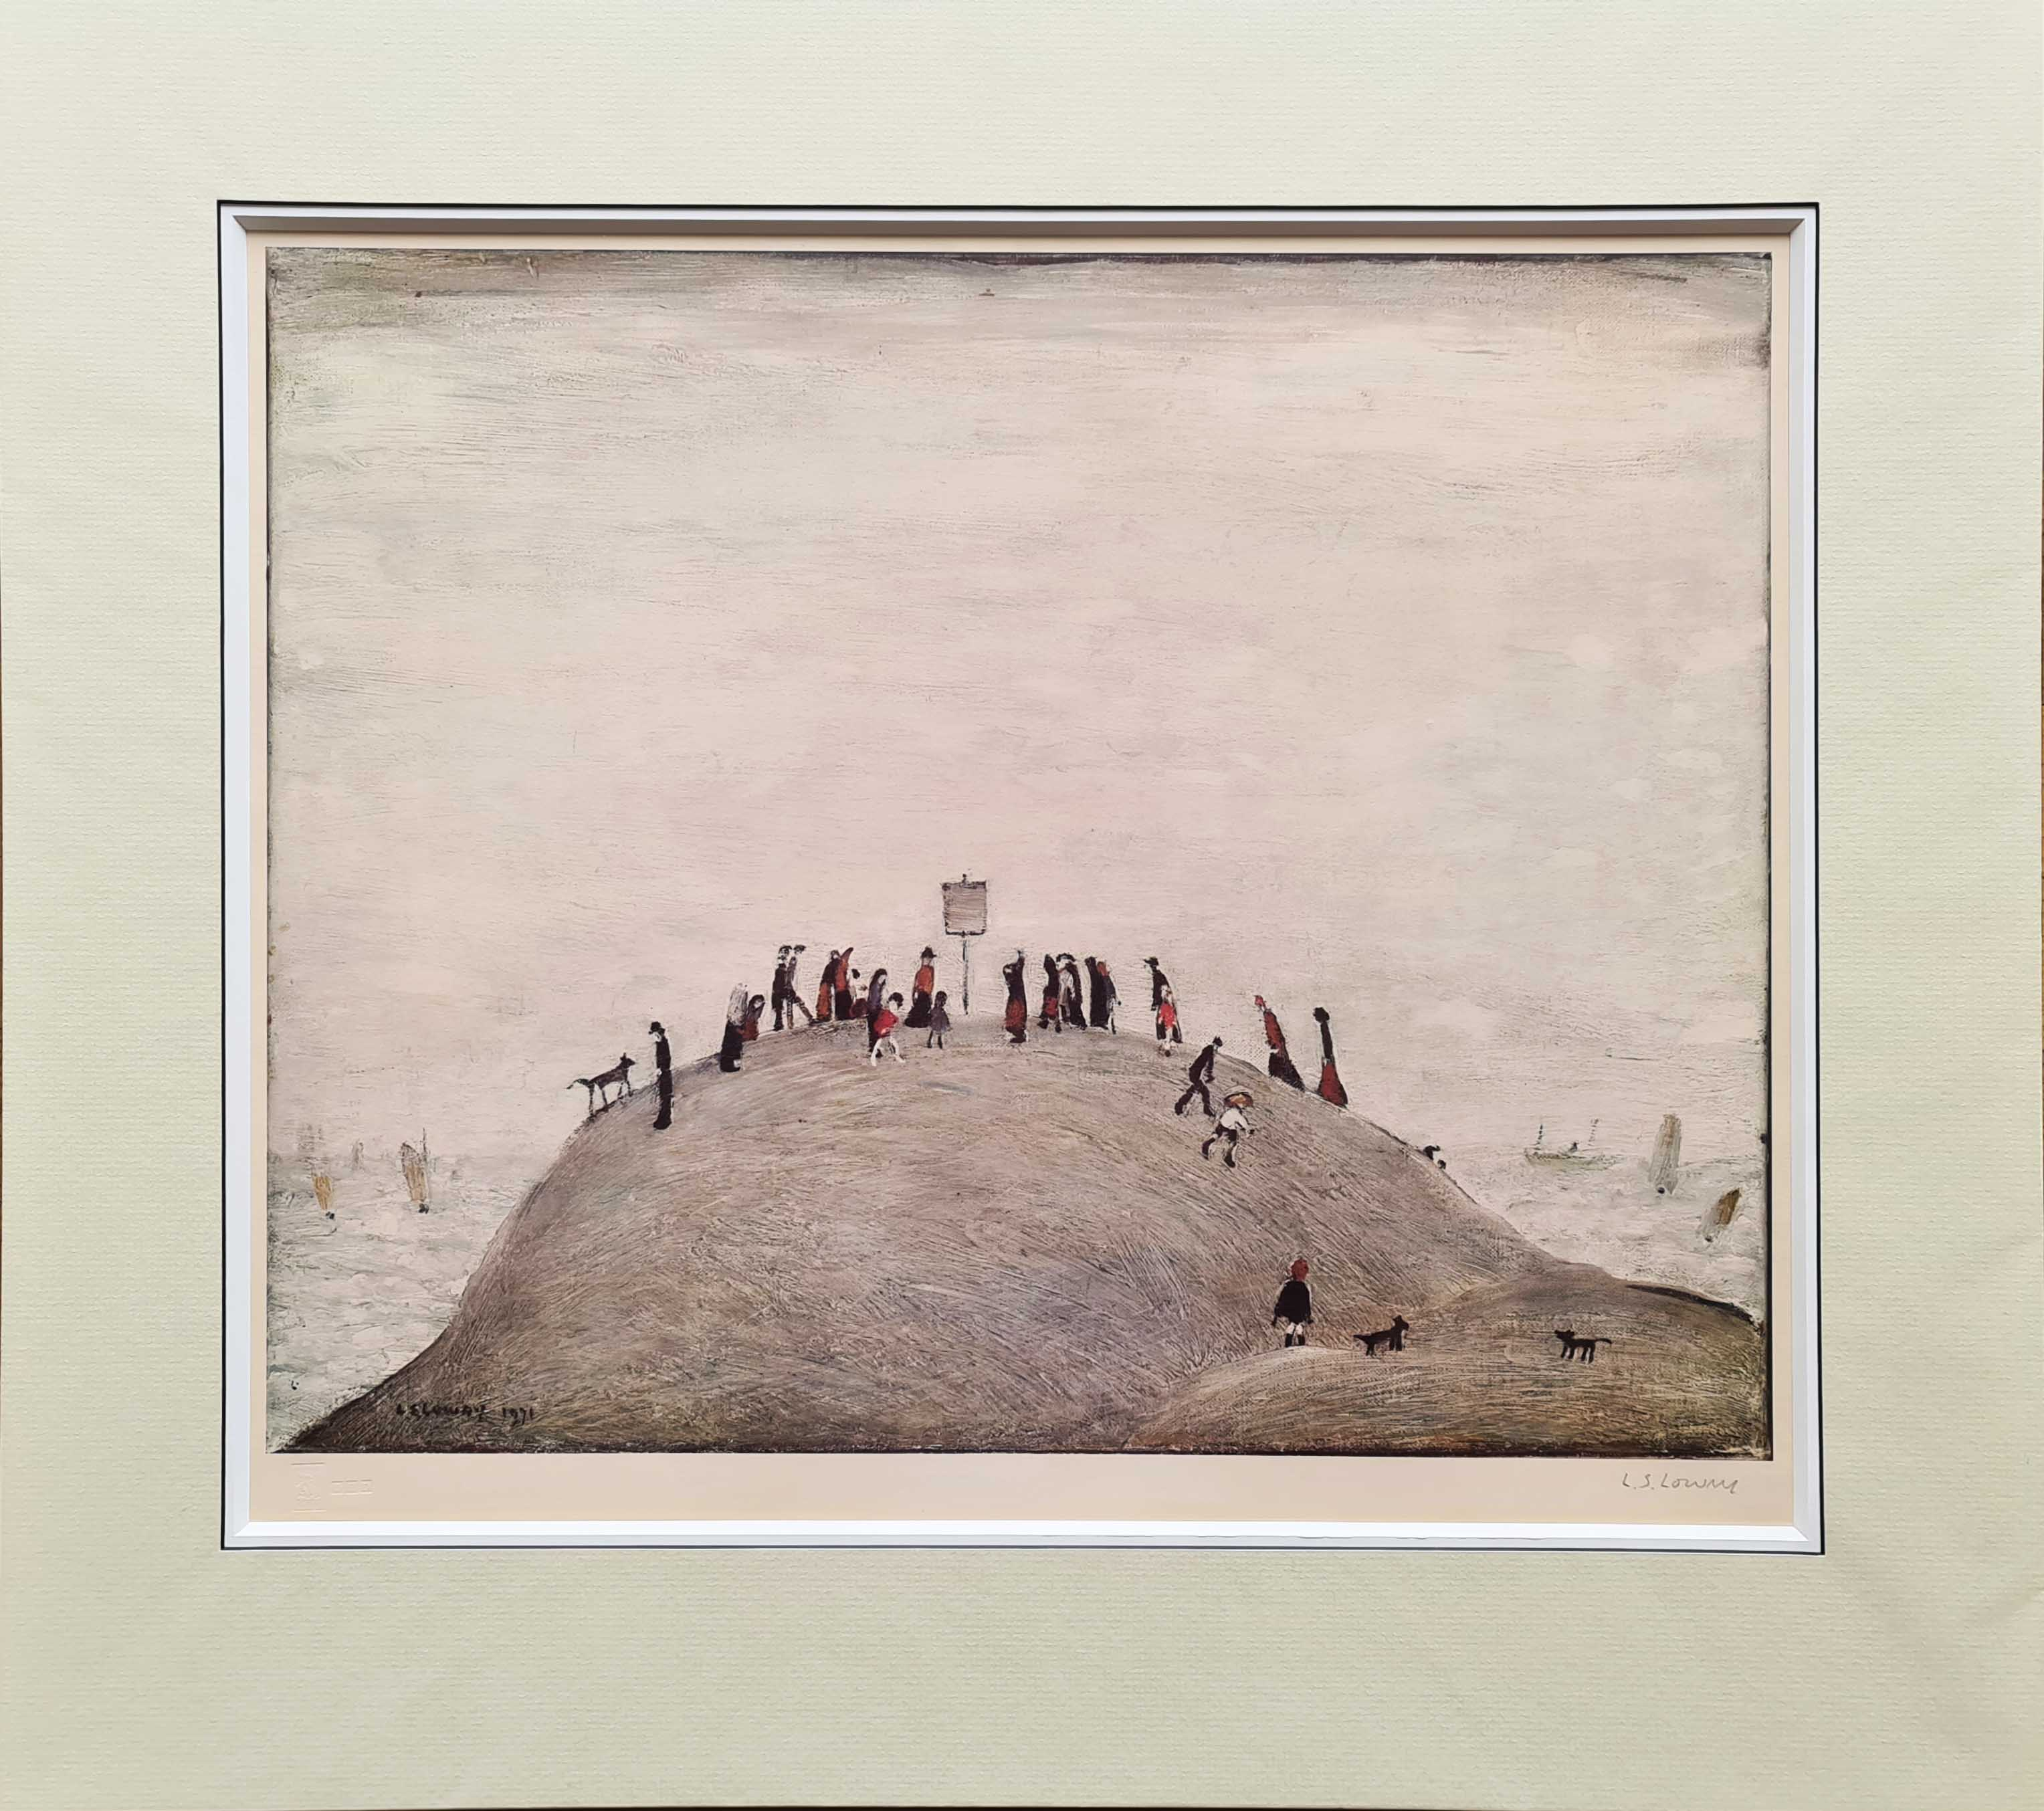 lowry, the noticeboard, signed print lslowry